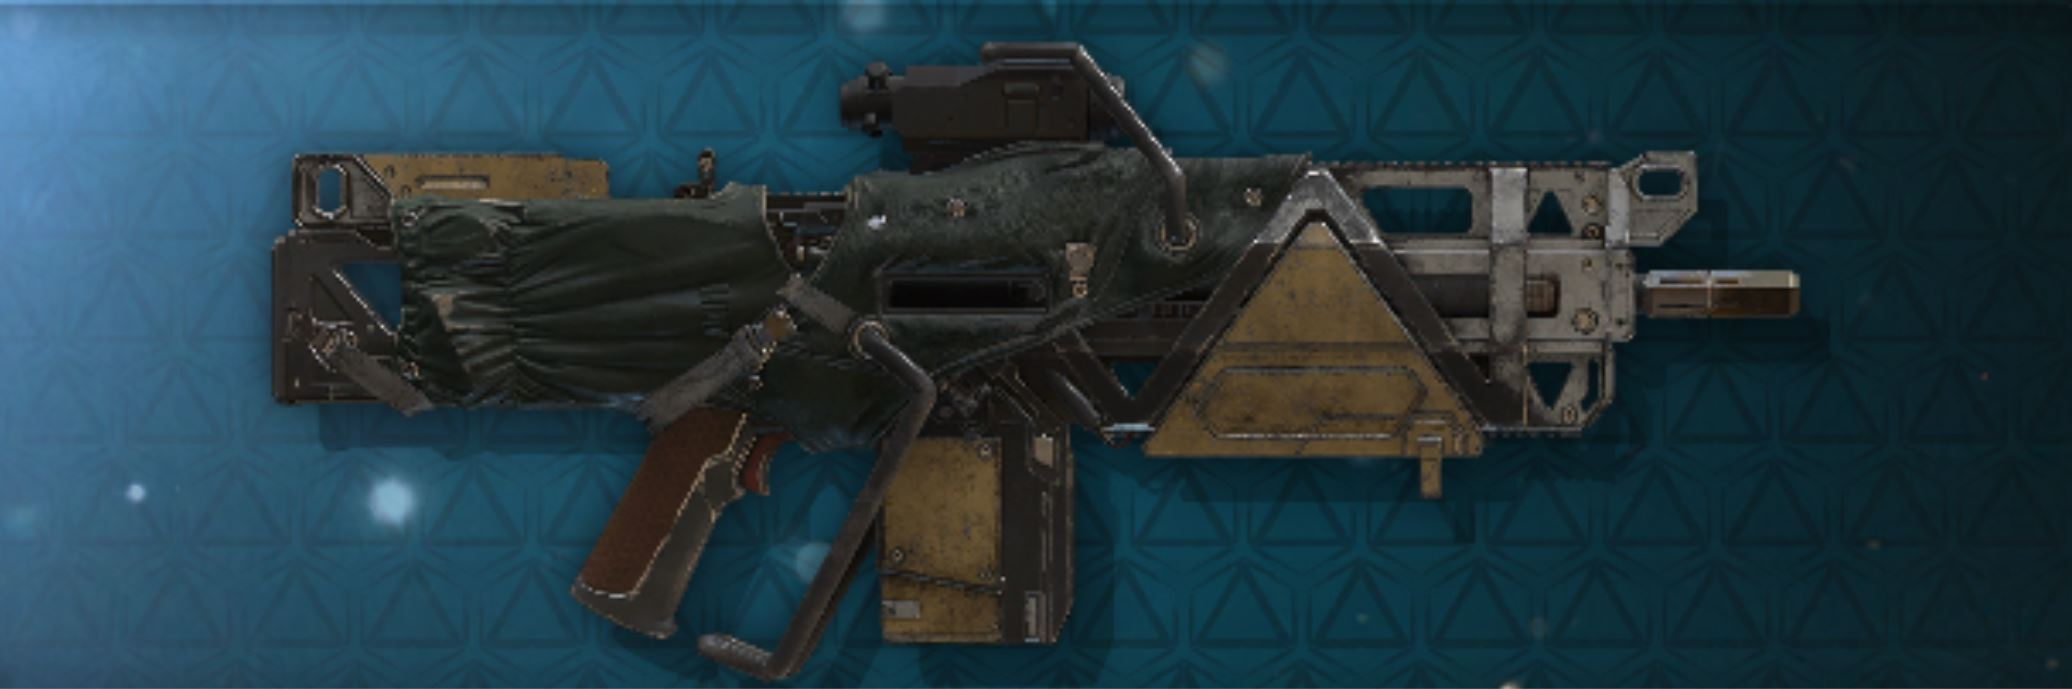 Assault Rifle - Hammerhead.JPG